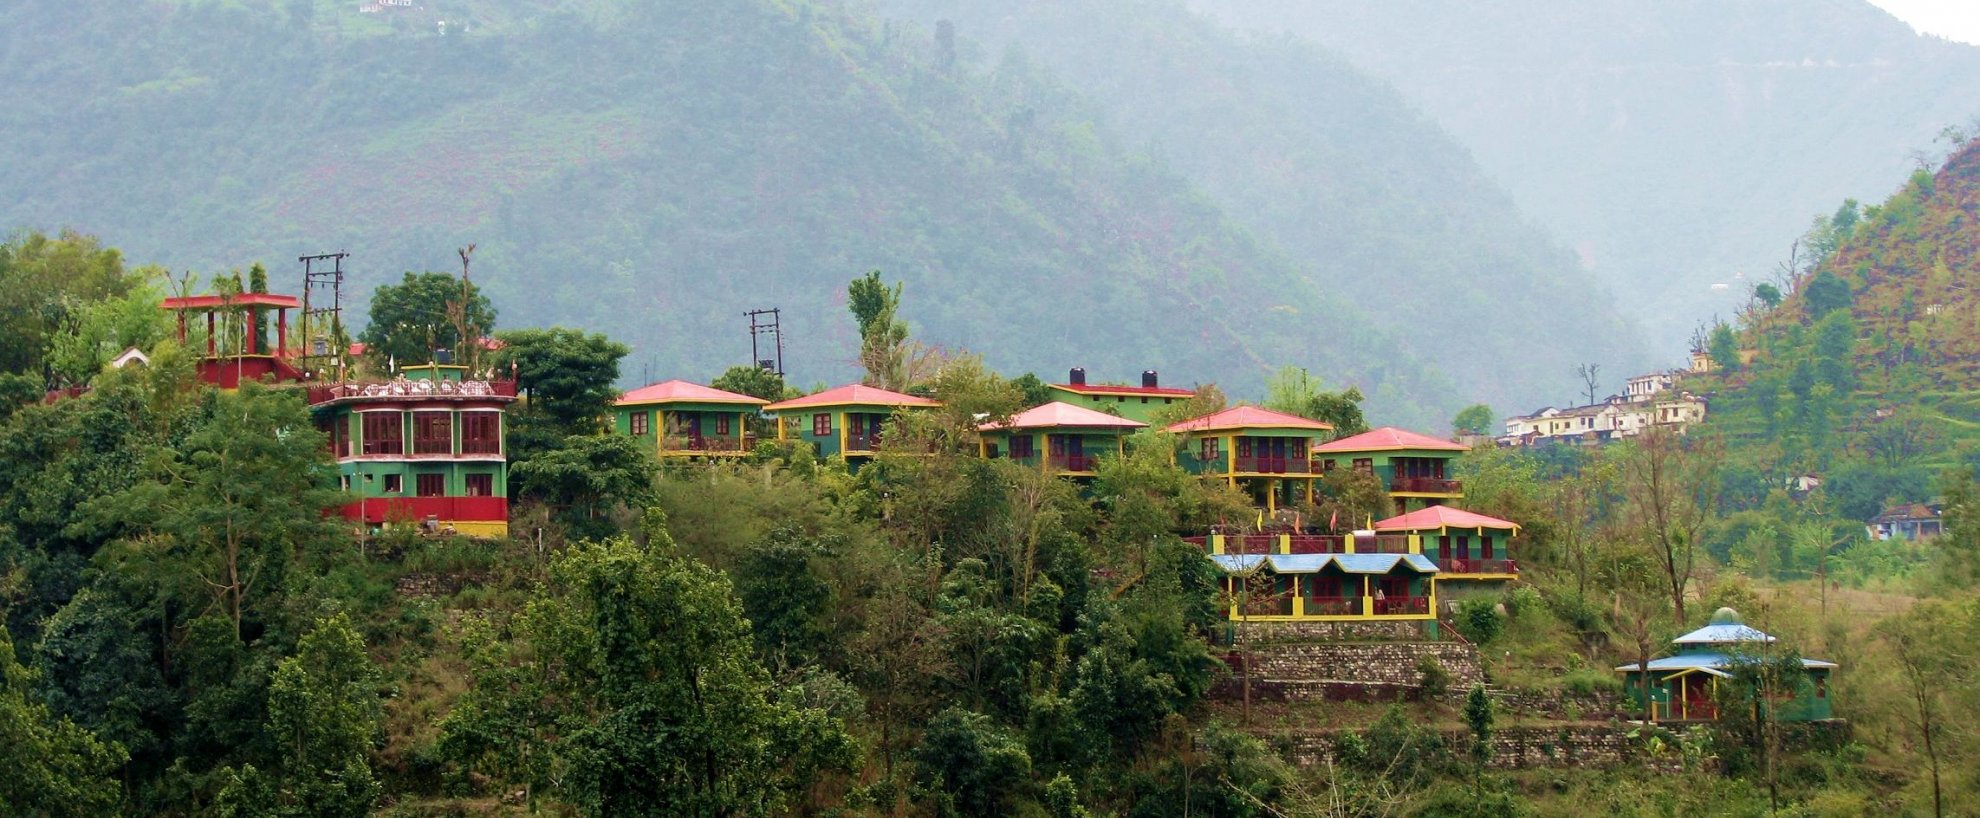 Indien Rundreise Nordindien Anandlok Resort  Rishikesh Bungalows